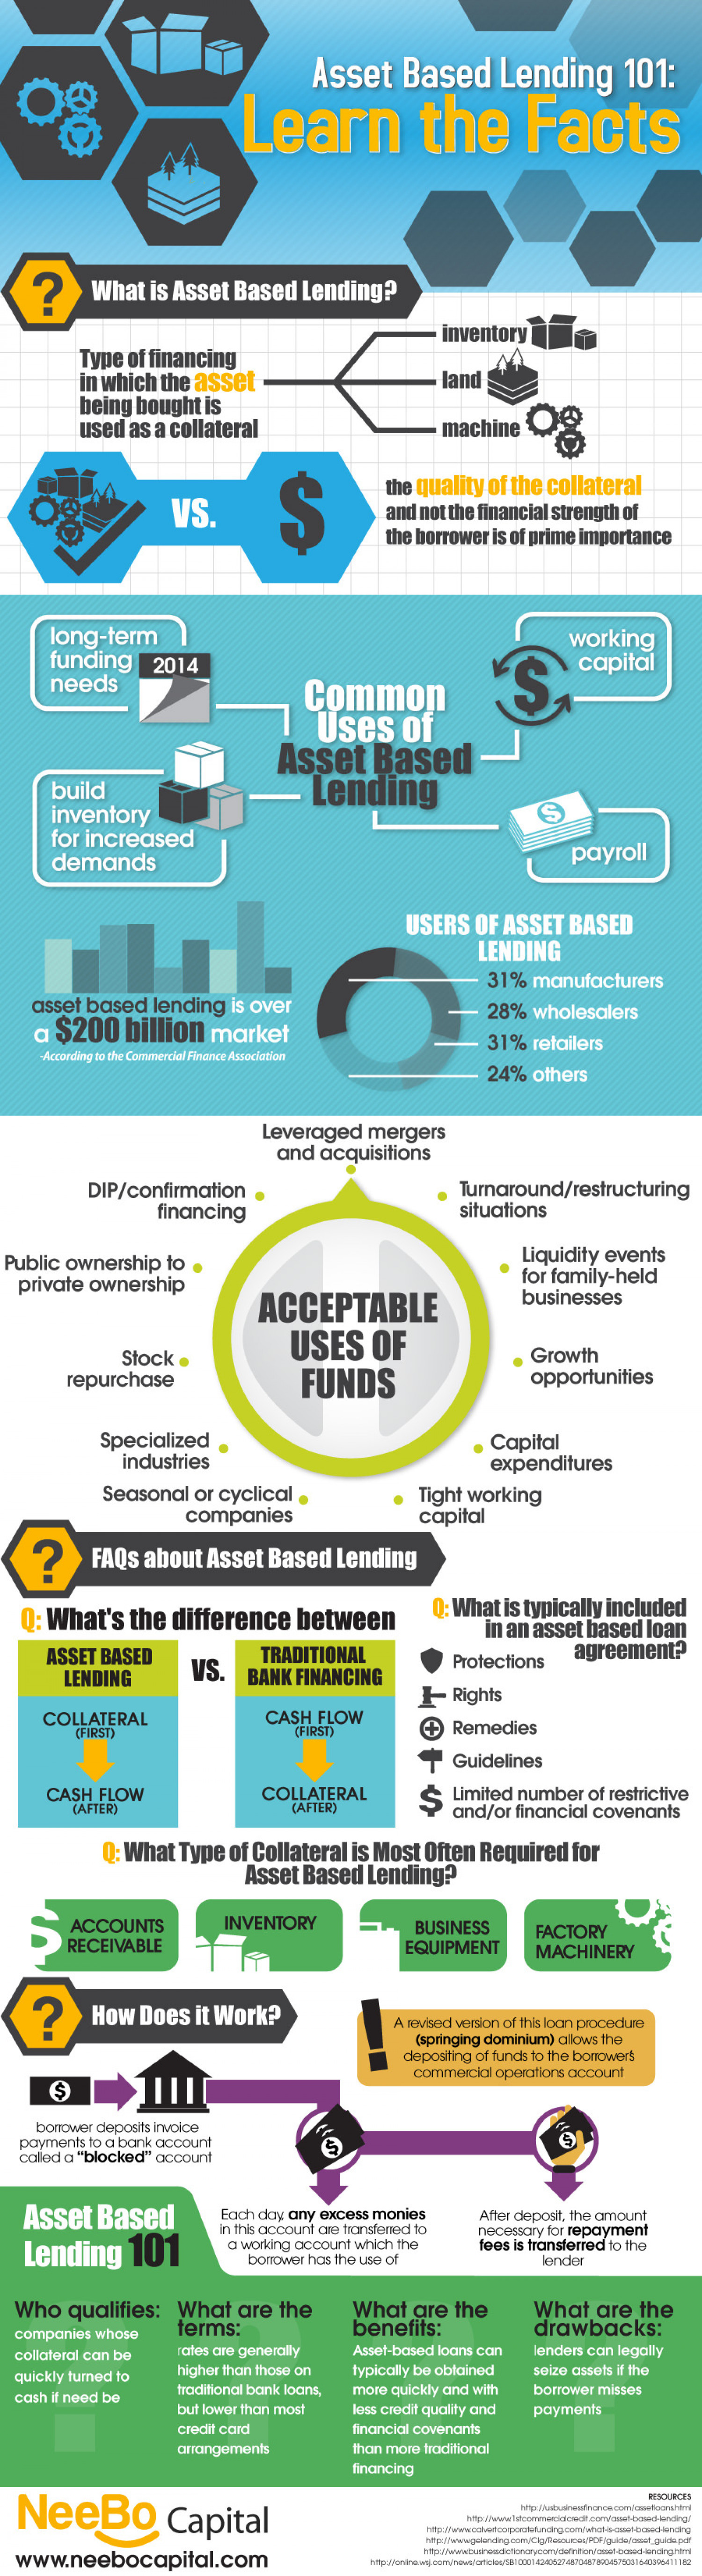 Asset Based Lending 101: Learn the Facts Infographic